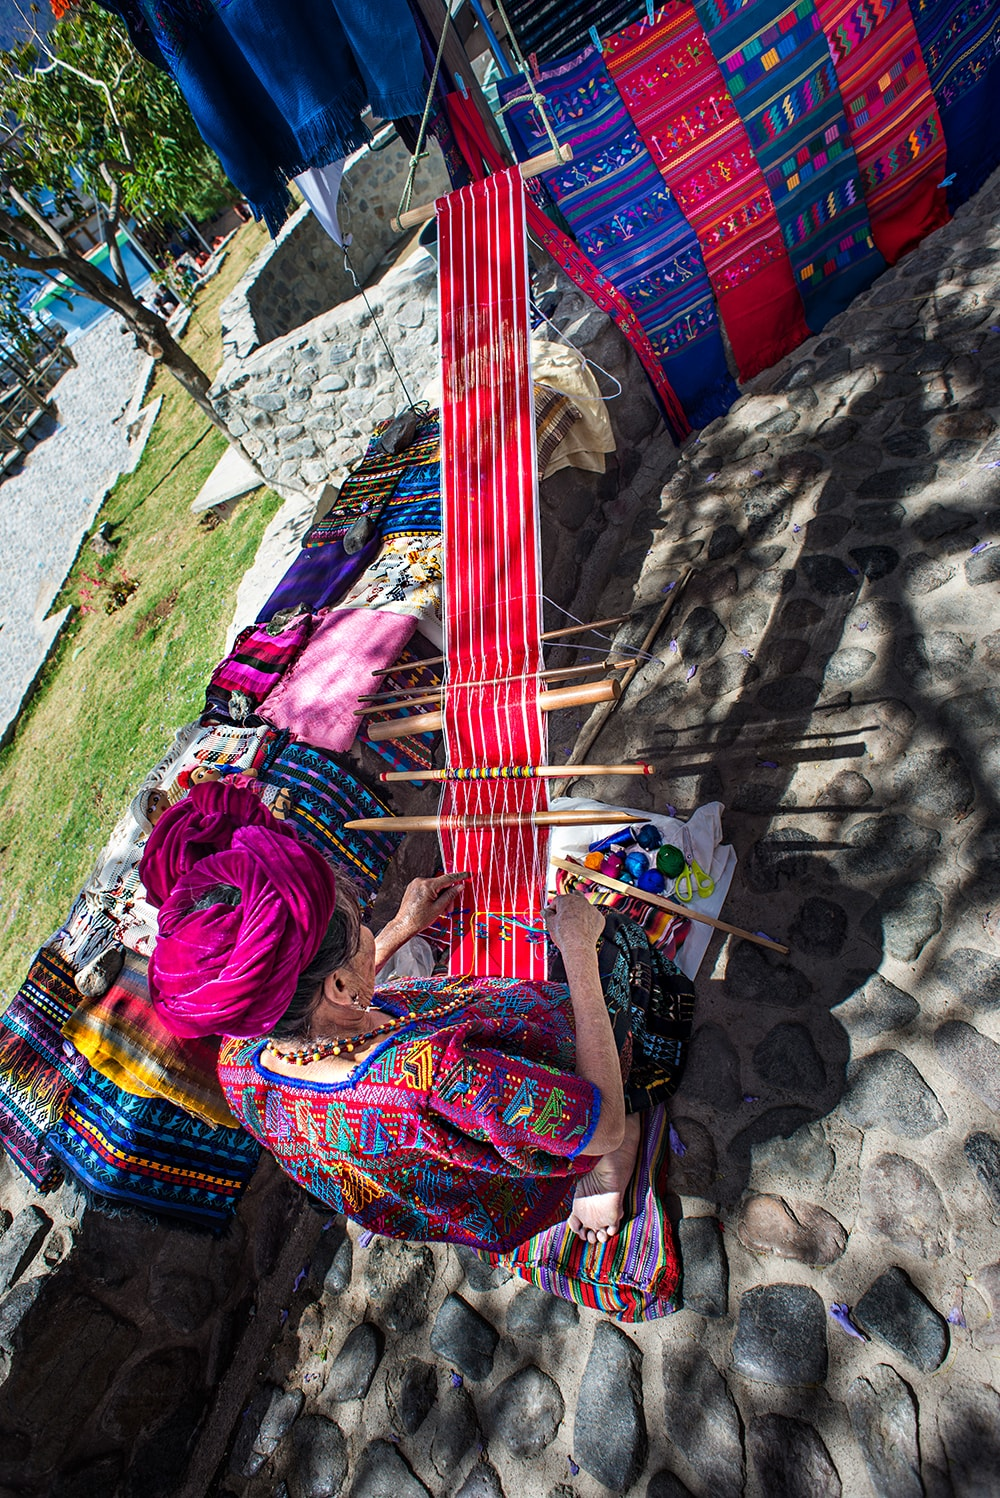 Mayan woman weaving textiles in Panajachel